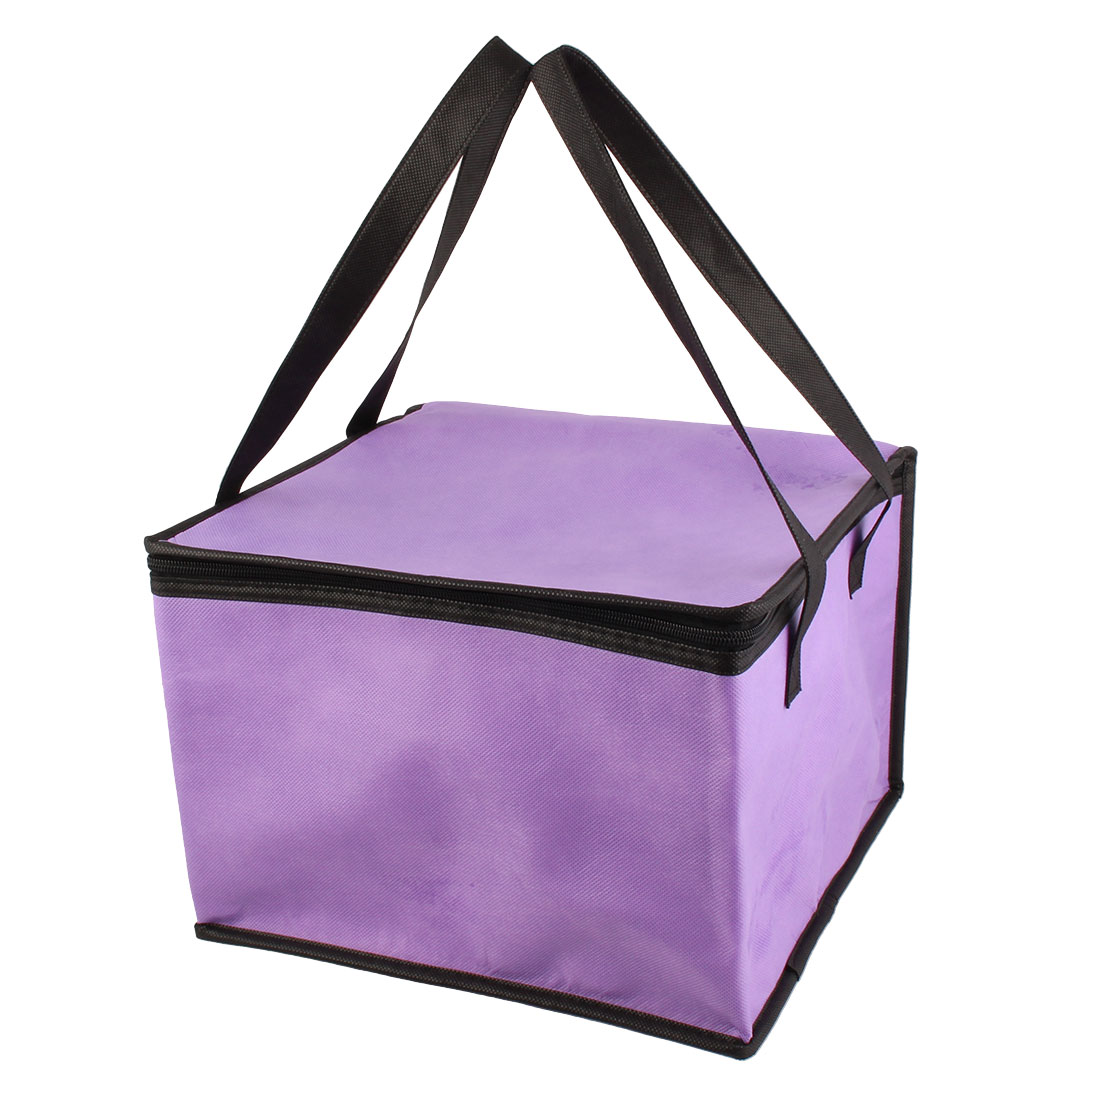 "Non-Woven Fabric 12.4"" Length Insulated Thermal Lunch Cooler Tote Bag"